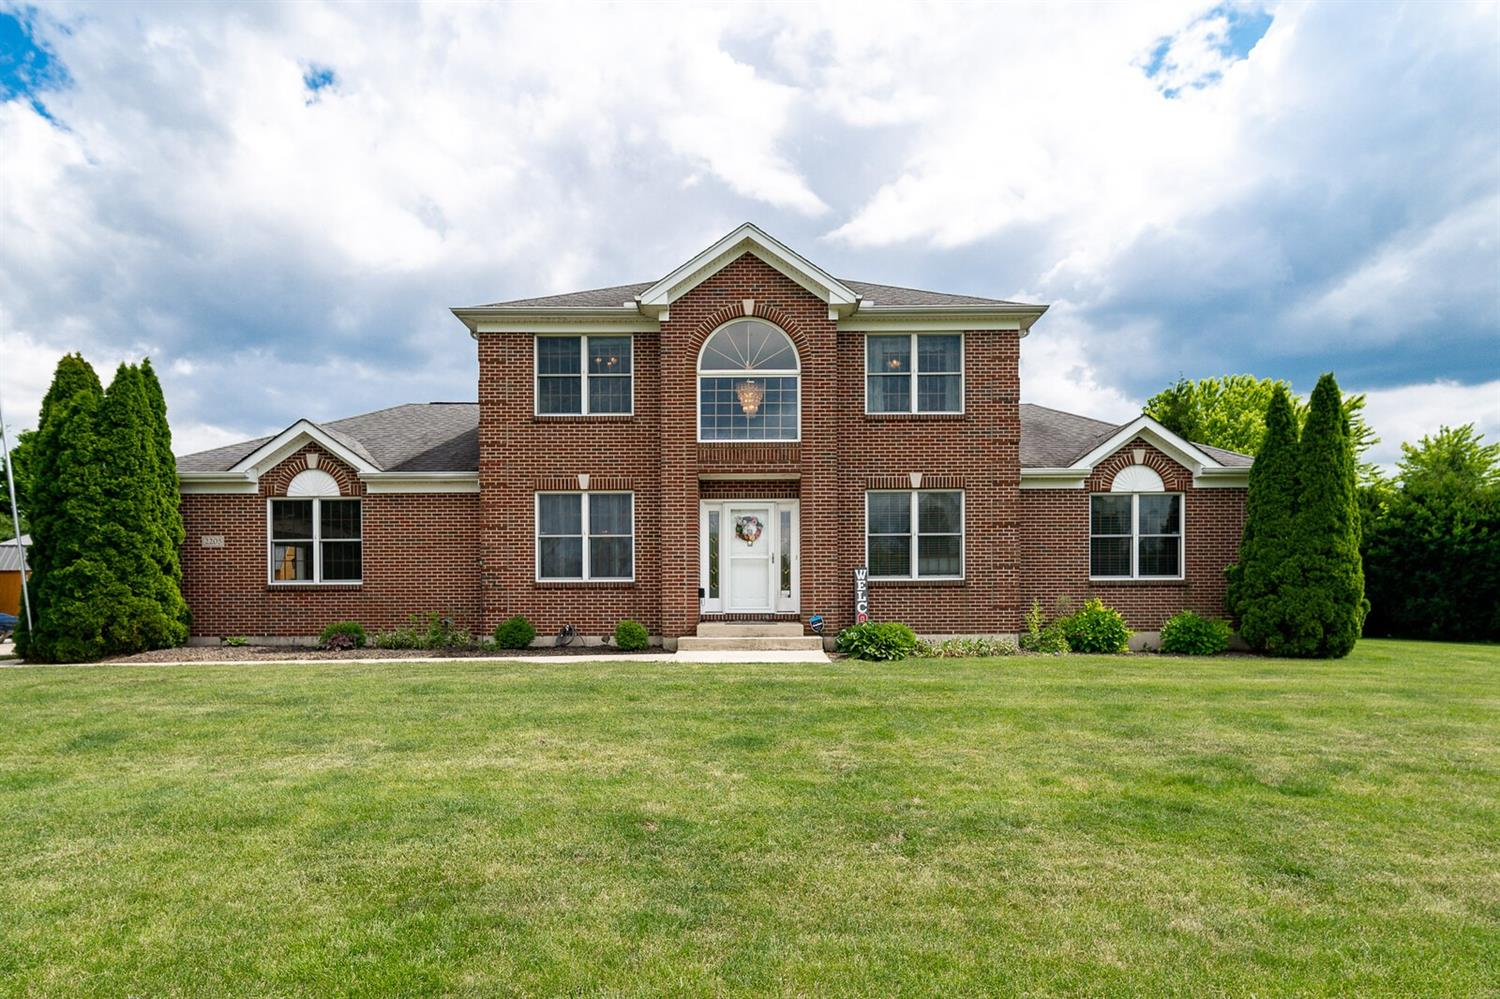 Property for sale at 2205 Sharon View Court, Turtle Creek Twp,  Ohio 45036